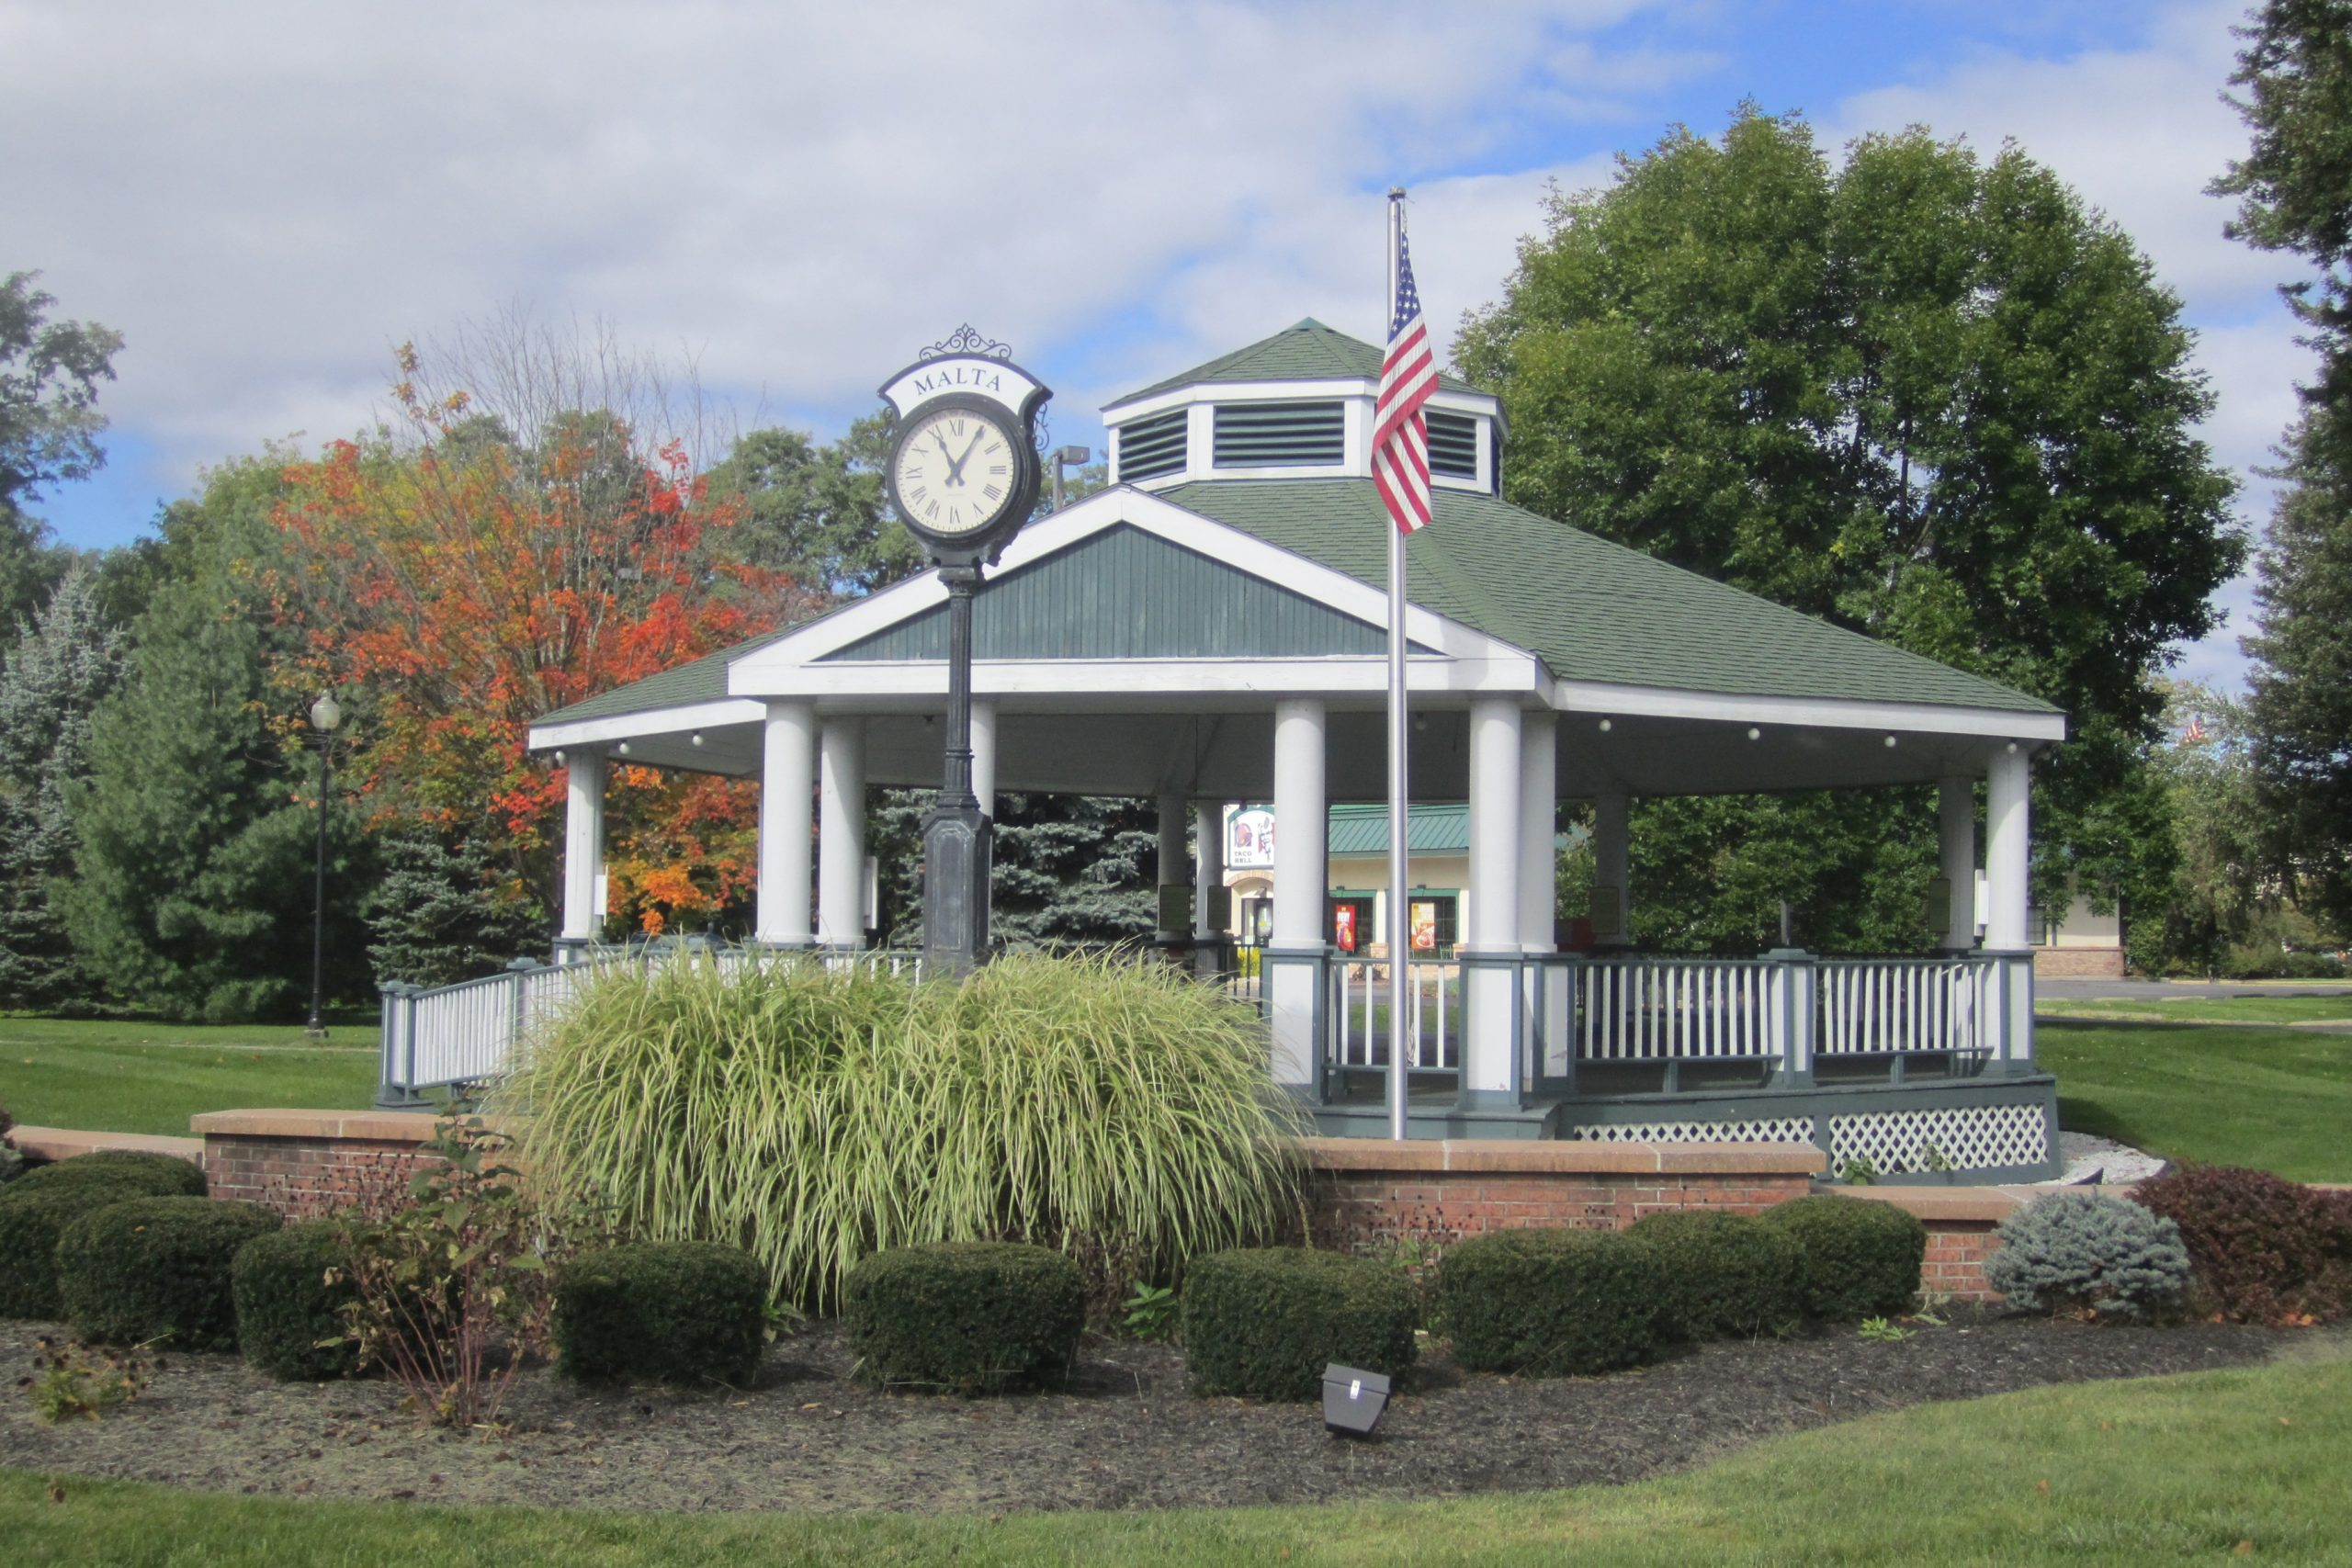 Photo of Pavilion in Malta NY